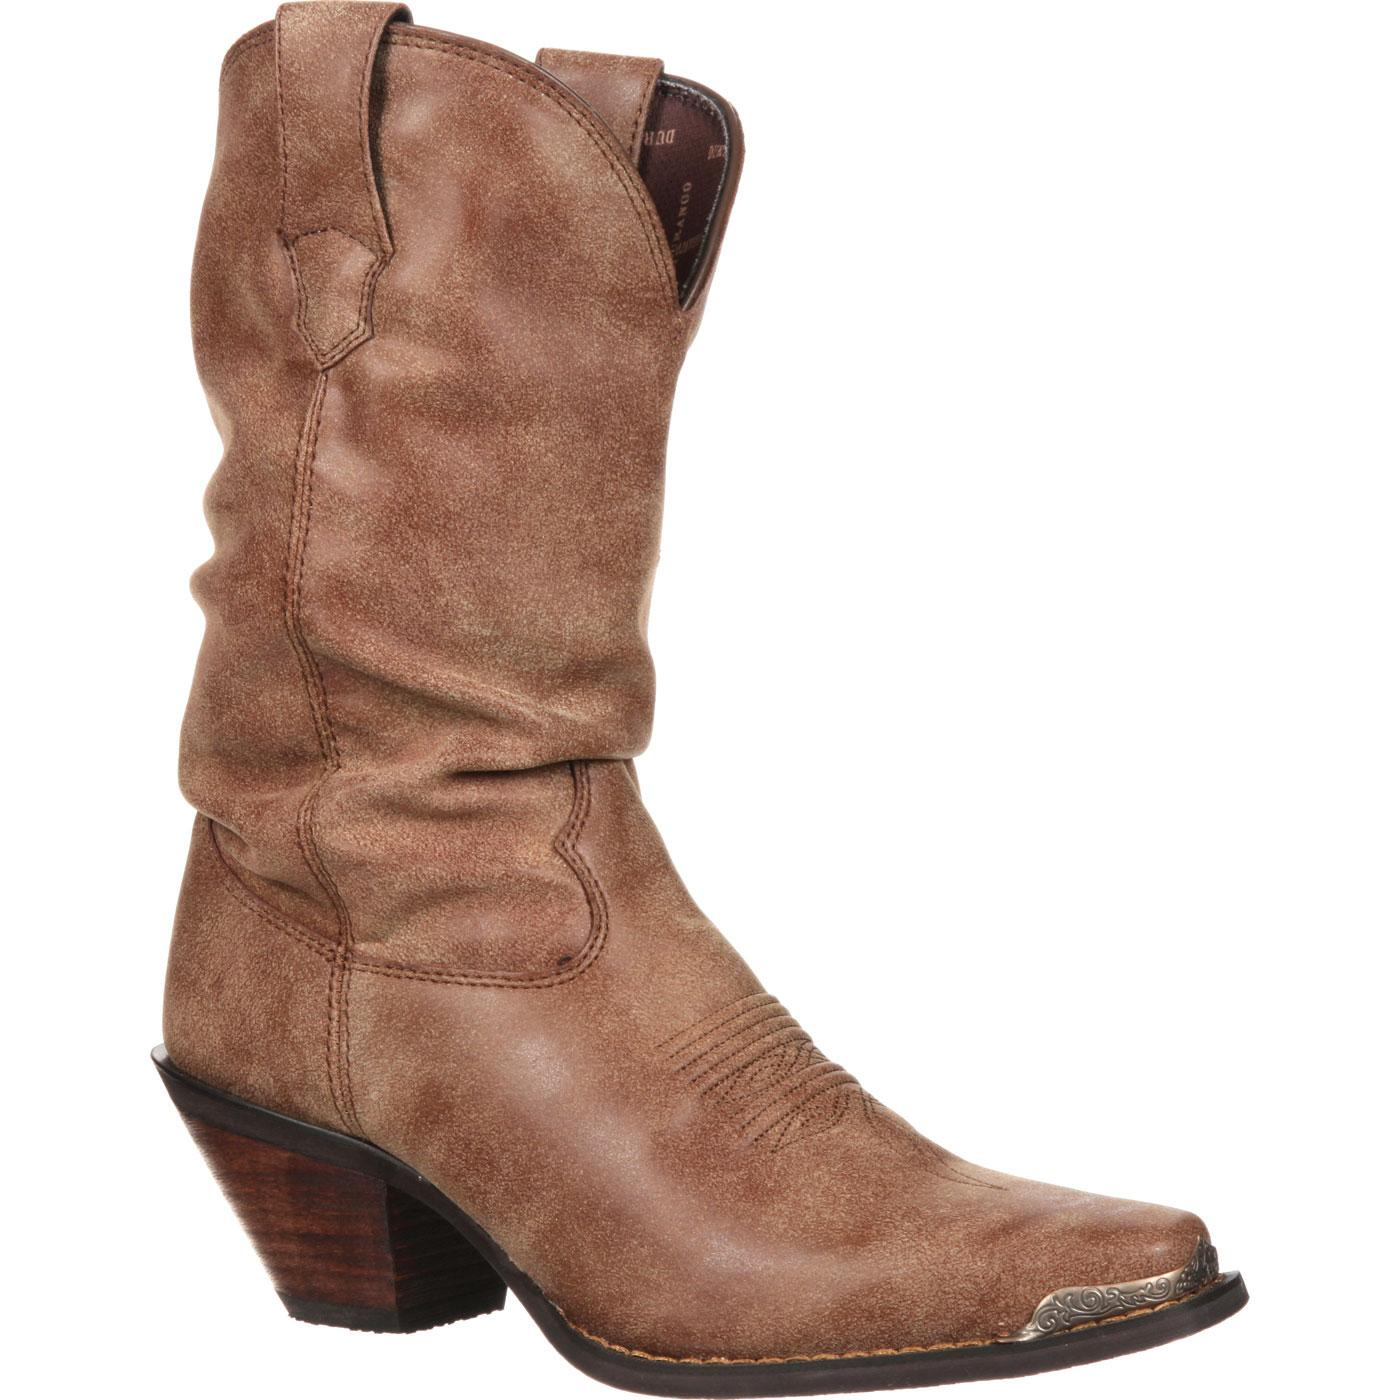 Buy Authentic separation shoes watch Crush by Durango Women's Slouch Western Boot